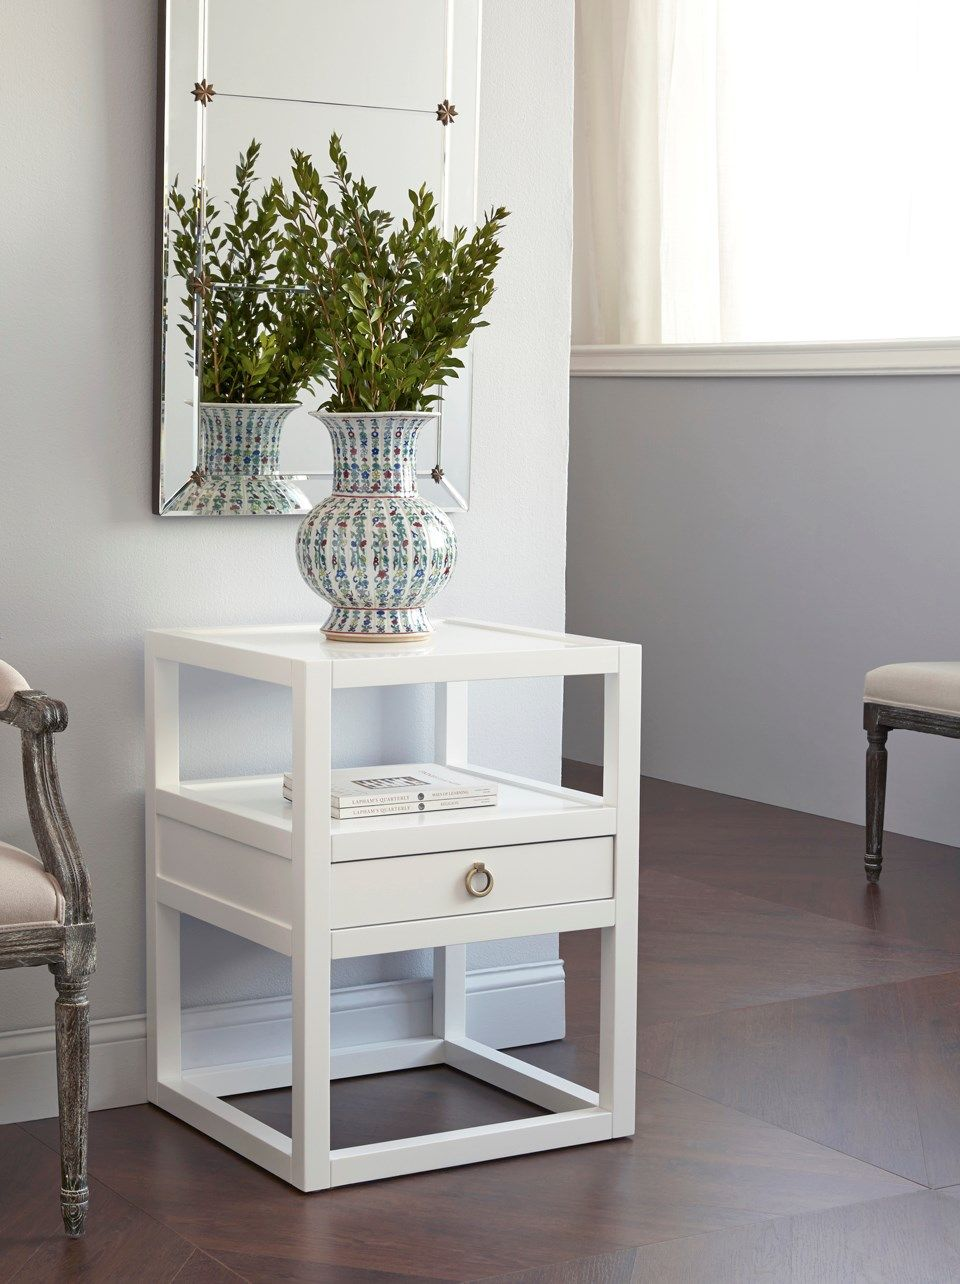 Alternate Side Table Idea    Like The Drawer In The Middle And Off The  Ground Nice Look